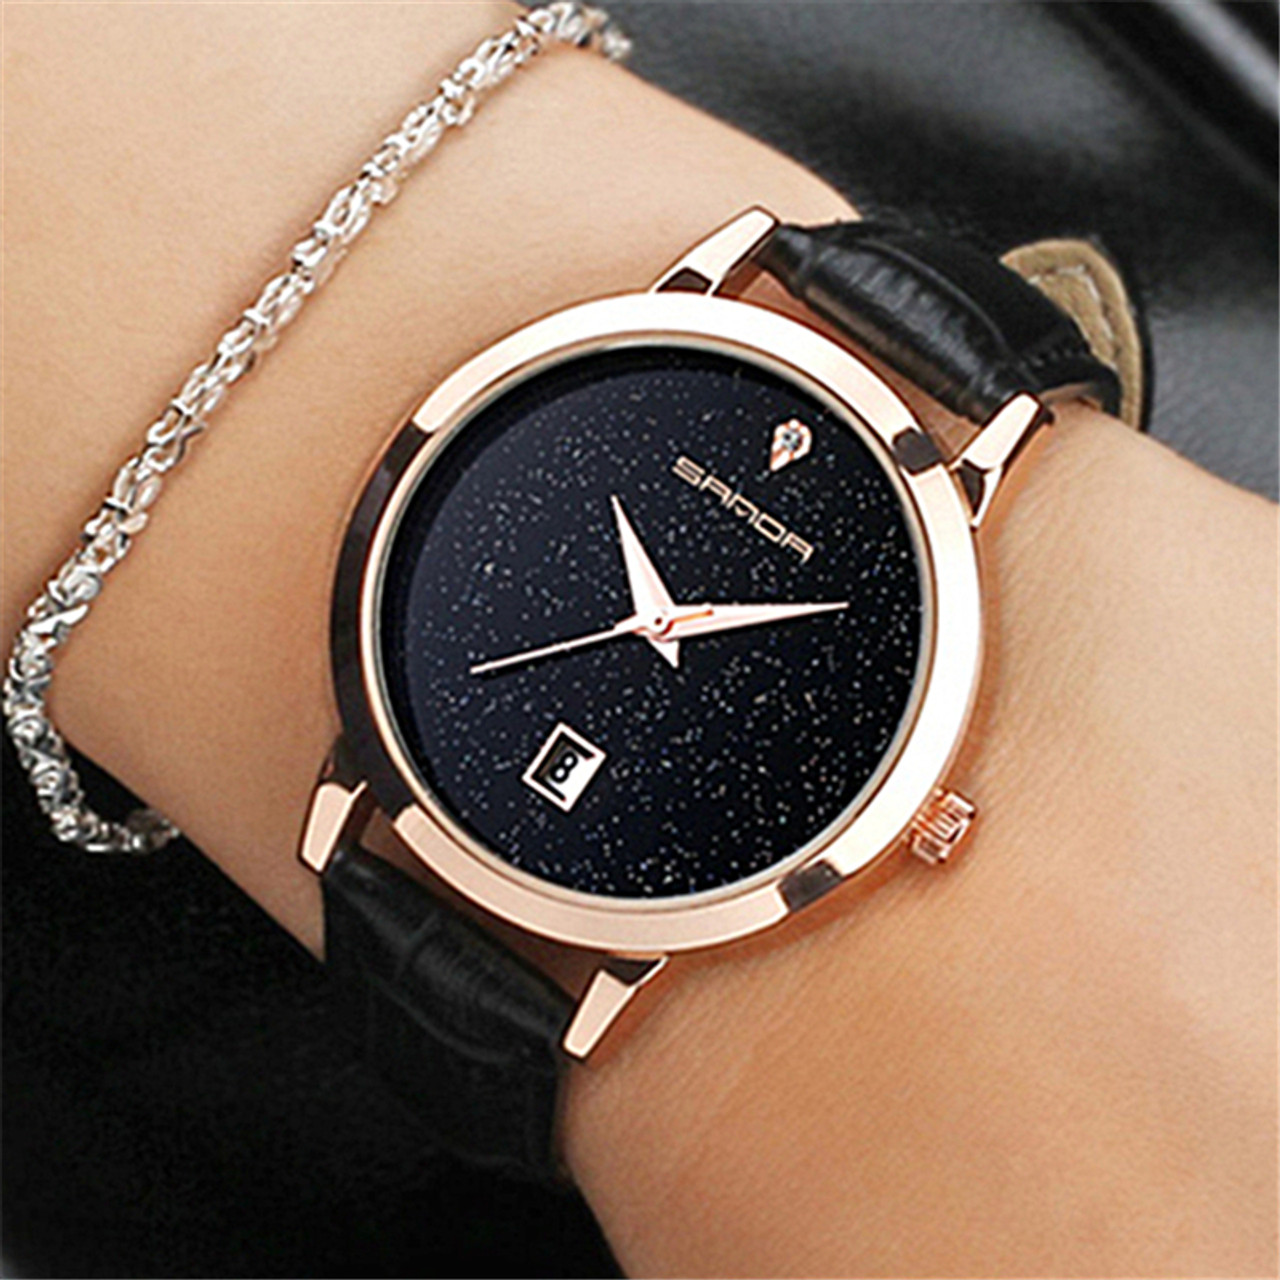 9a448ce0b56 SANDA brand quartz watch ladies waterproof leather watch watch fashion  romantic woman watch Relogio Faminino - OnshopDeals.Com